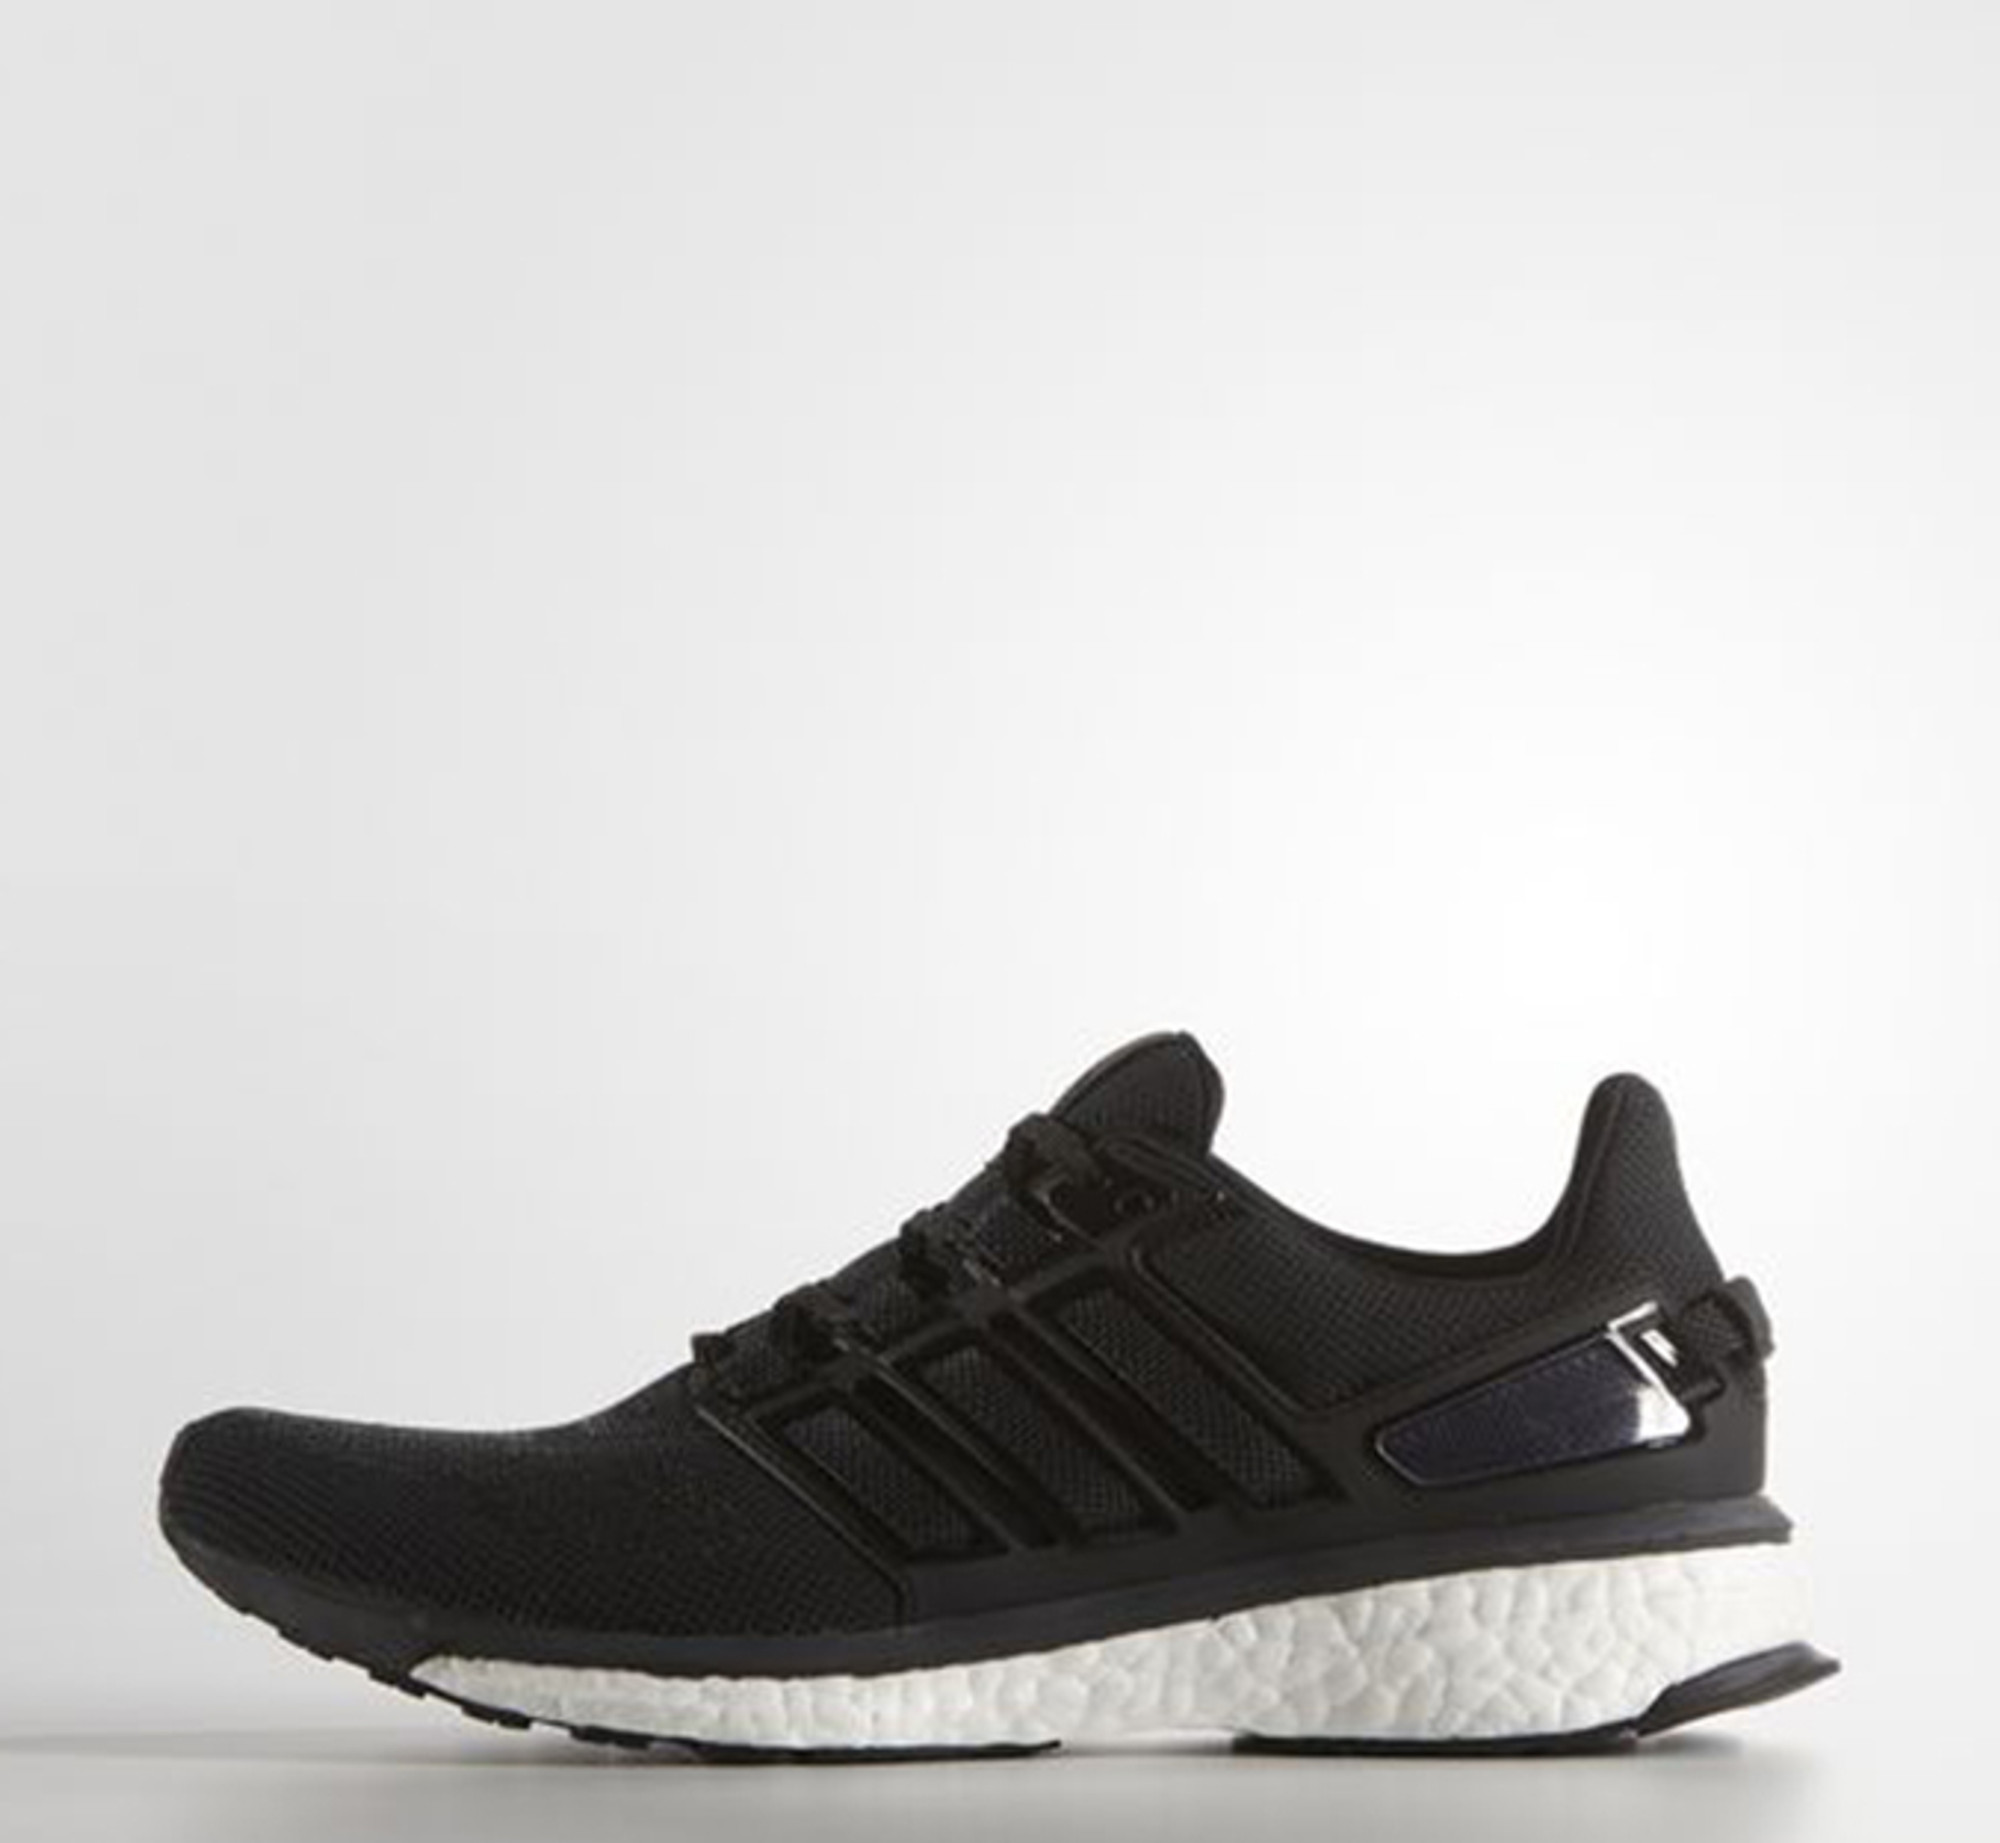 new product 9c7ed a5610 ... adidas Energy Boost 3 m · A WELL-CUSHIONED, NEUTRAL SHOE FOR ALL LEVELS  OF RUNNERS ...